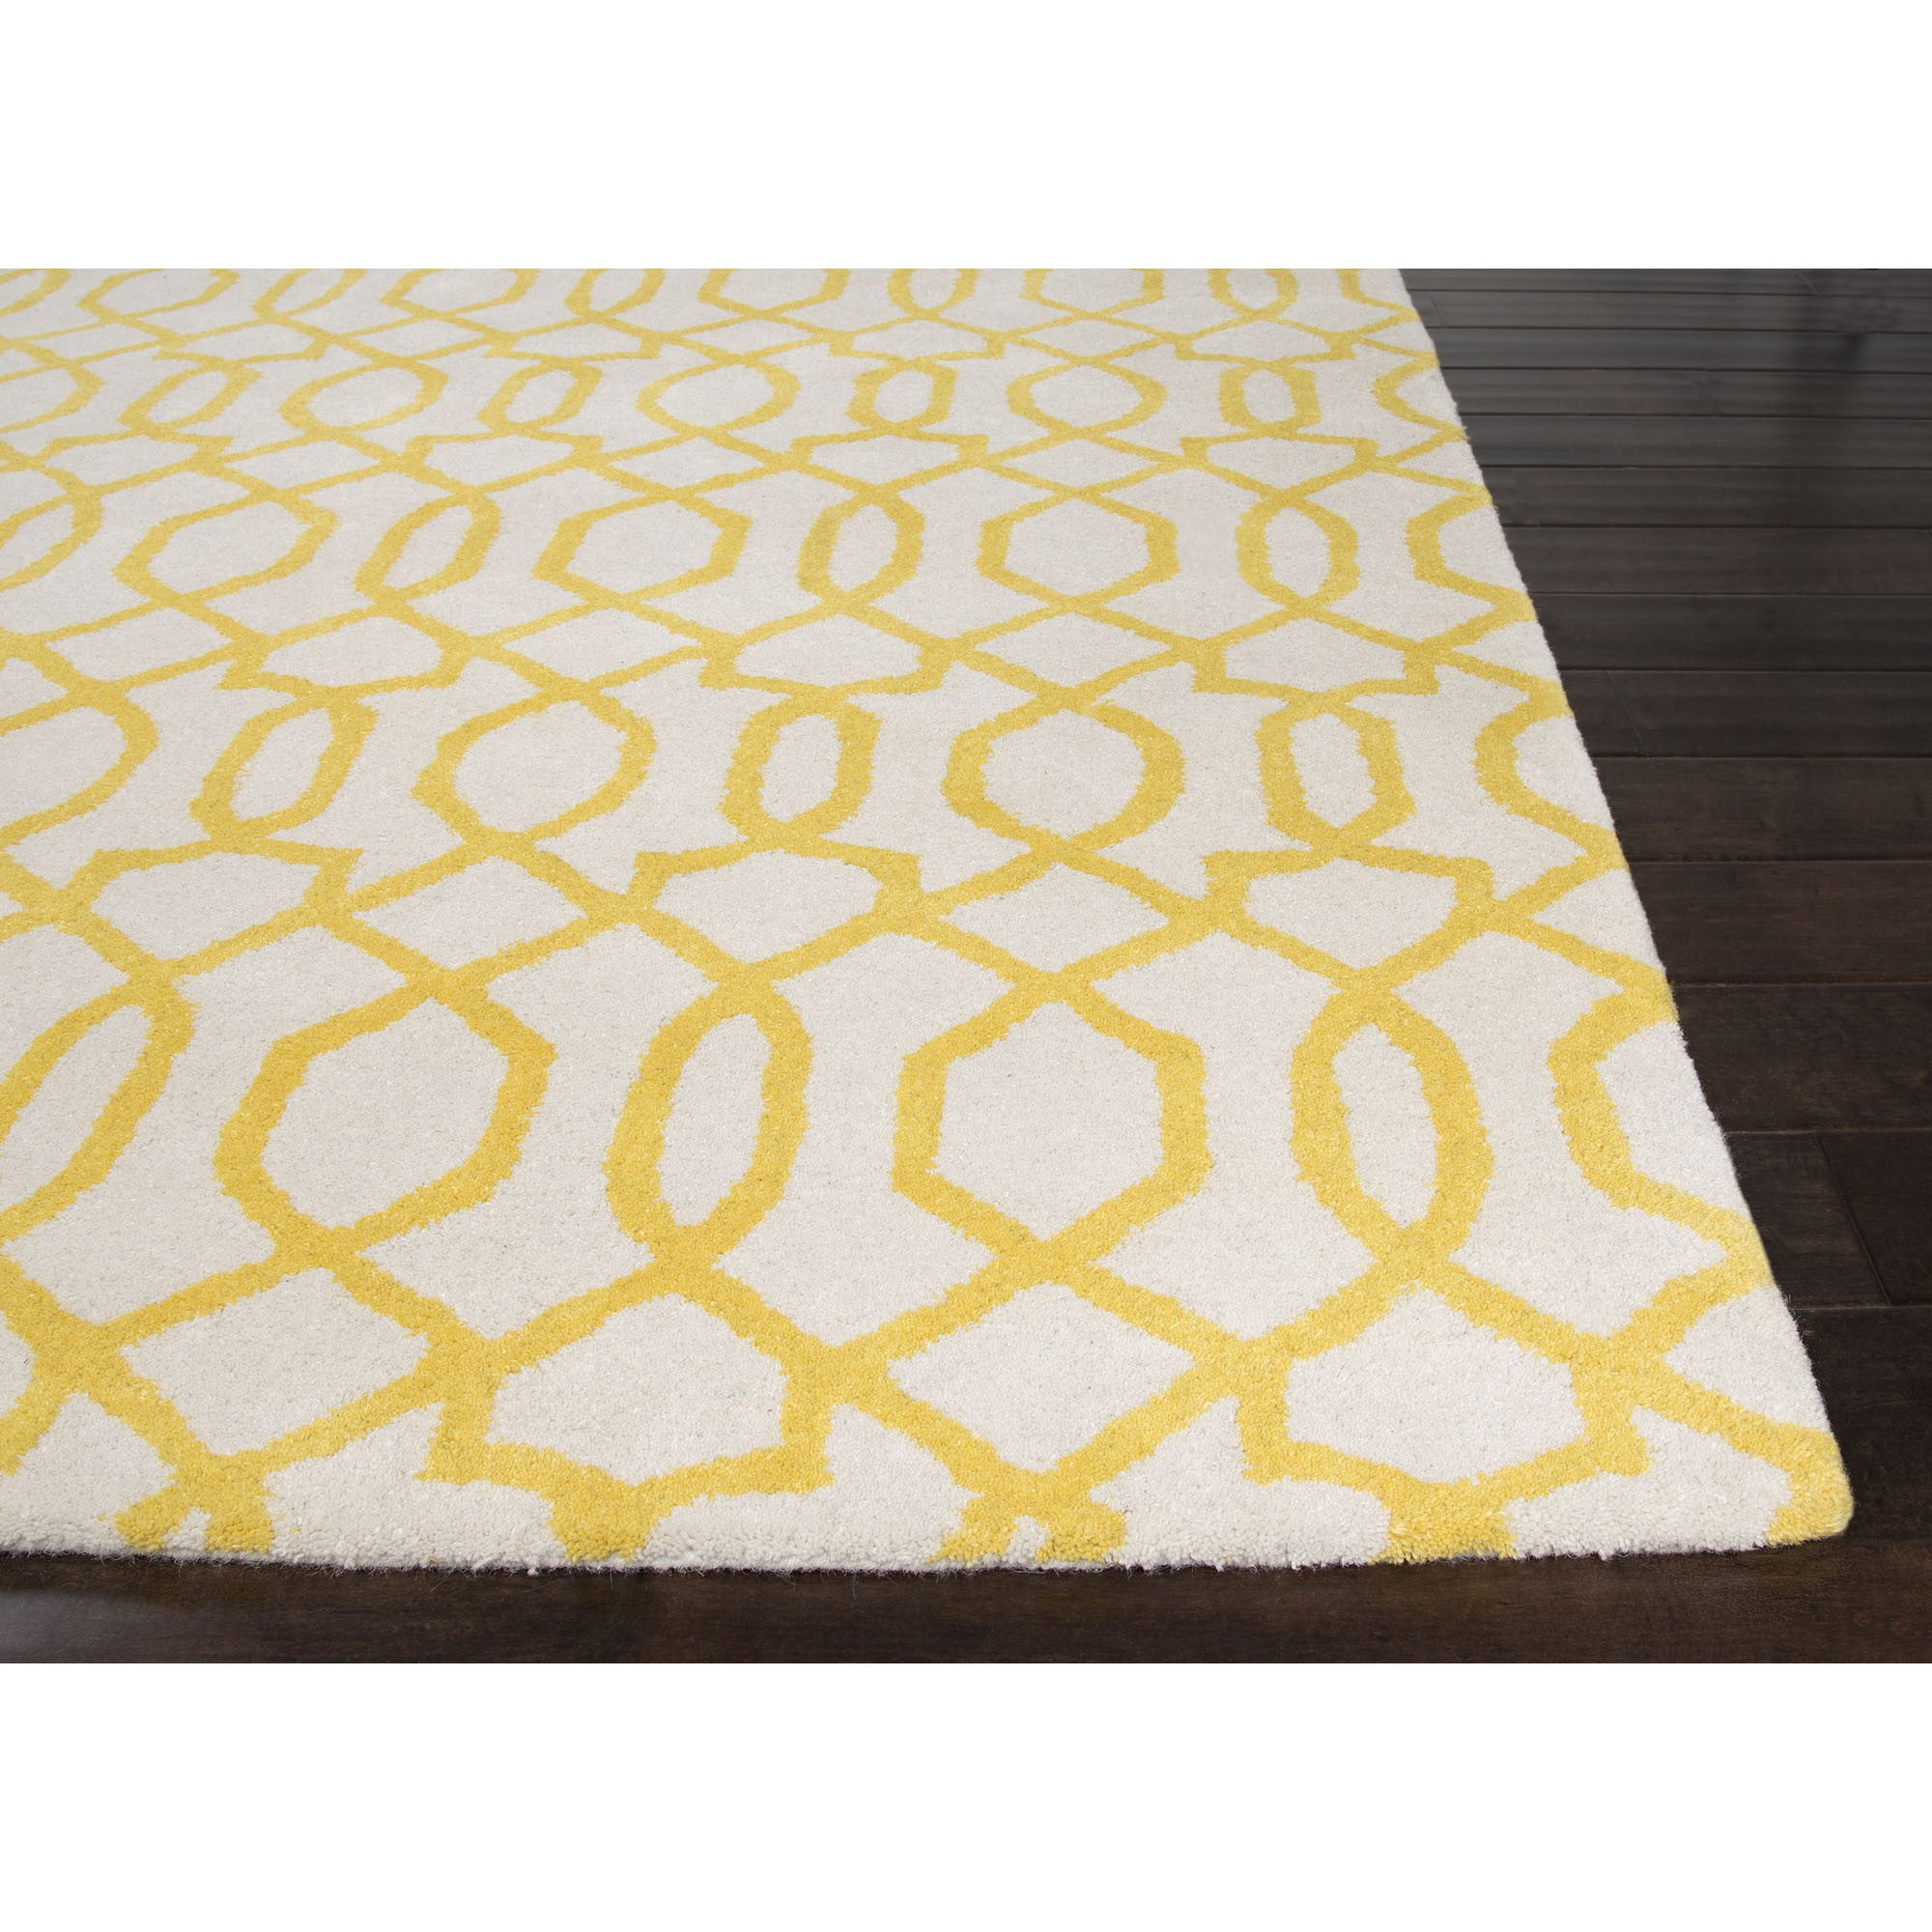 Jaipur rugs modern geometric pattern ivory yellow wool for Modern wool area rugs